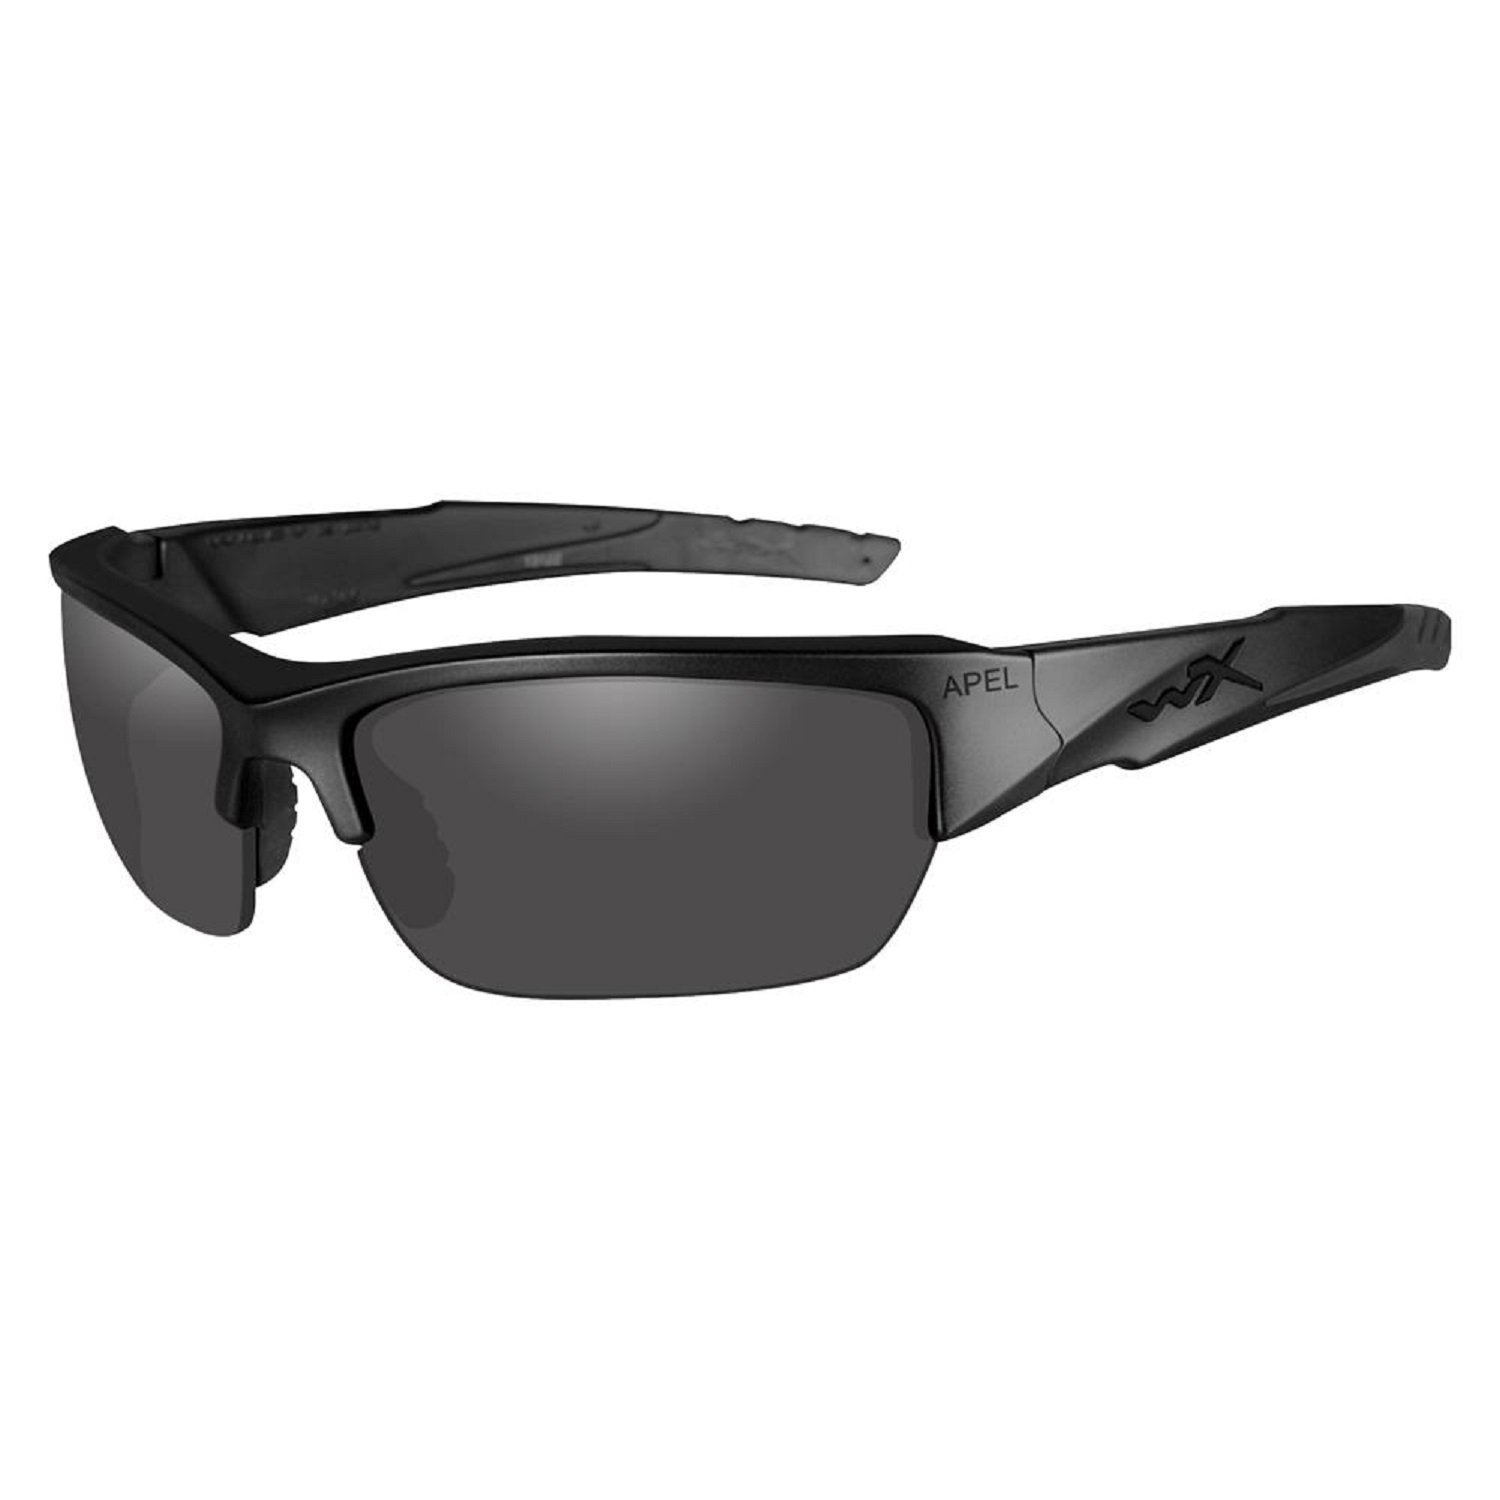 Amazon.com: Wiley X WX Valor apel – Gafas de sol, Color Gris ...